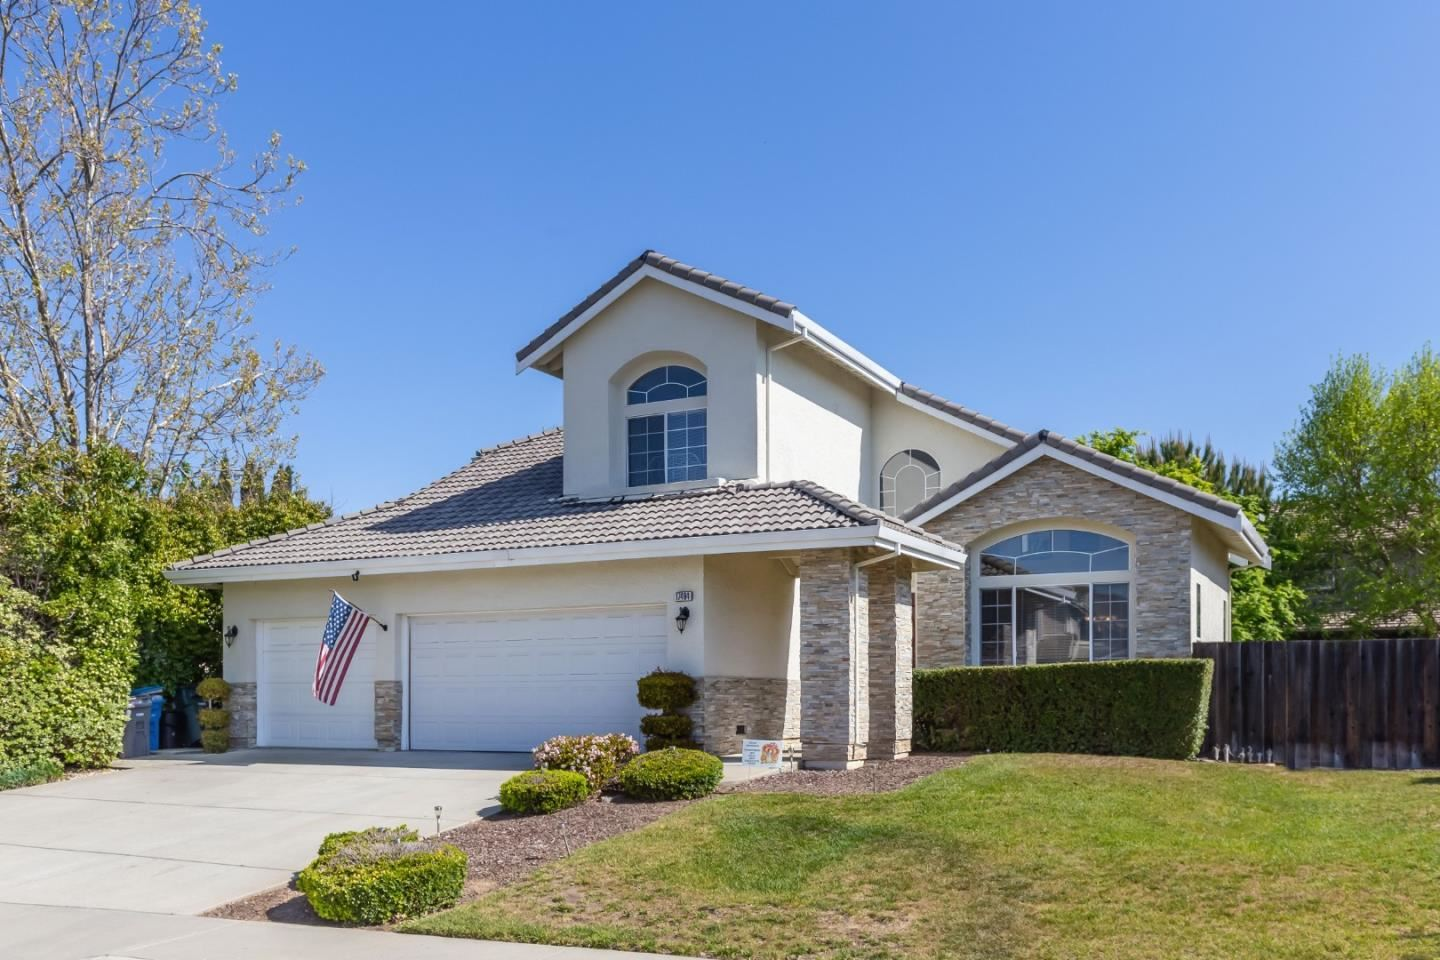 Photo for 17494 Calle Caballeria Court, MORGAN HILL, CA 95037 (MLS # ML81839588)